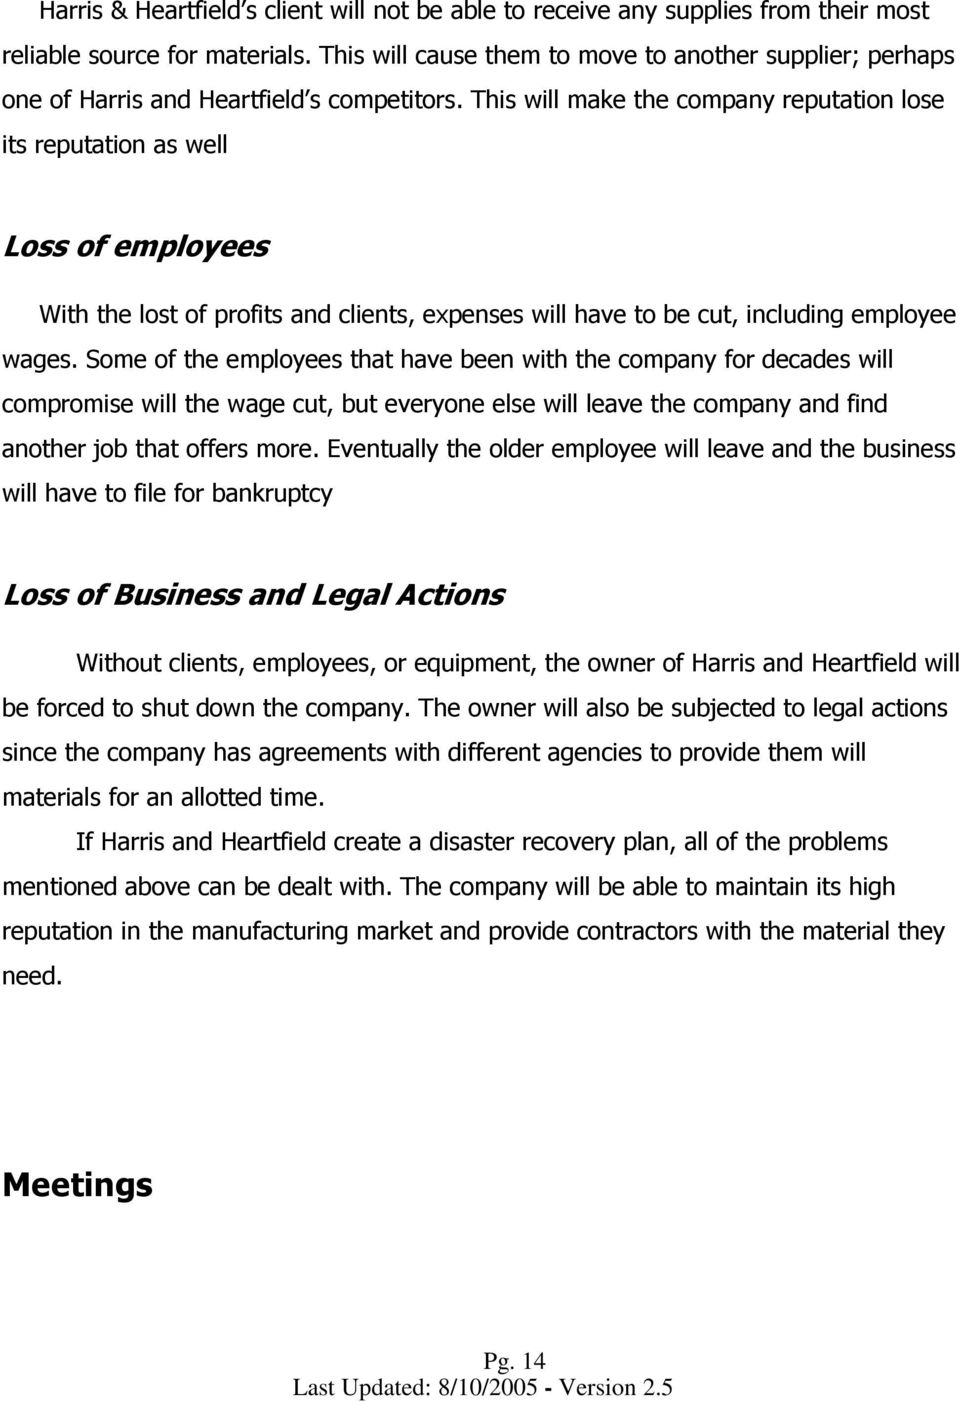 This will make the company reputation lose its reputation as well Loss of employees With the lost of profits and clients, expenses will have to be cut, including employee wages.